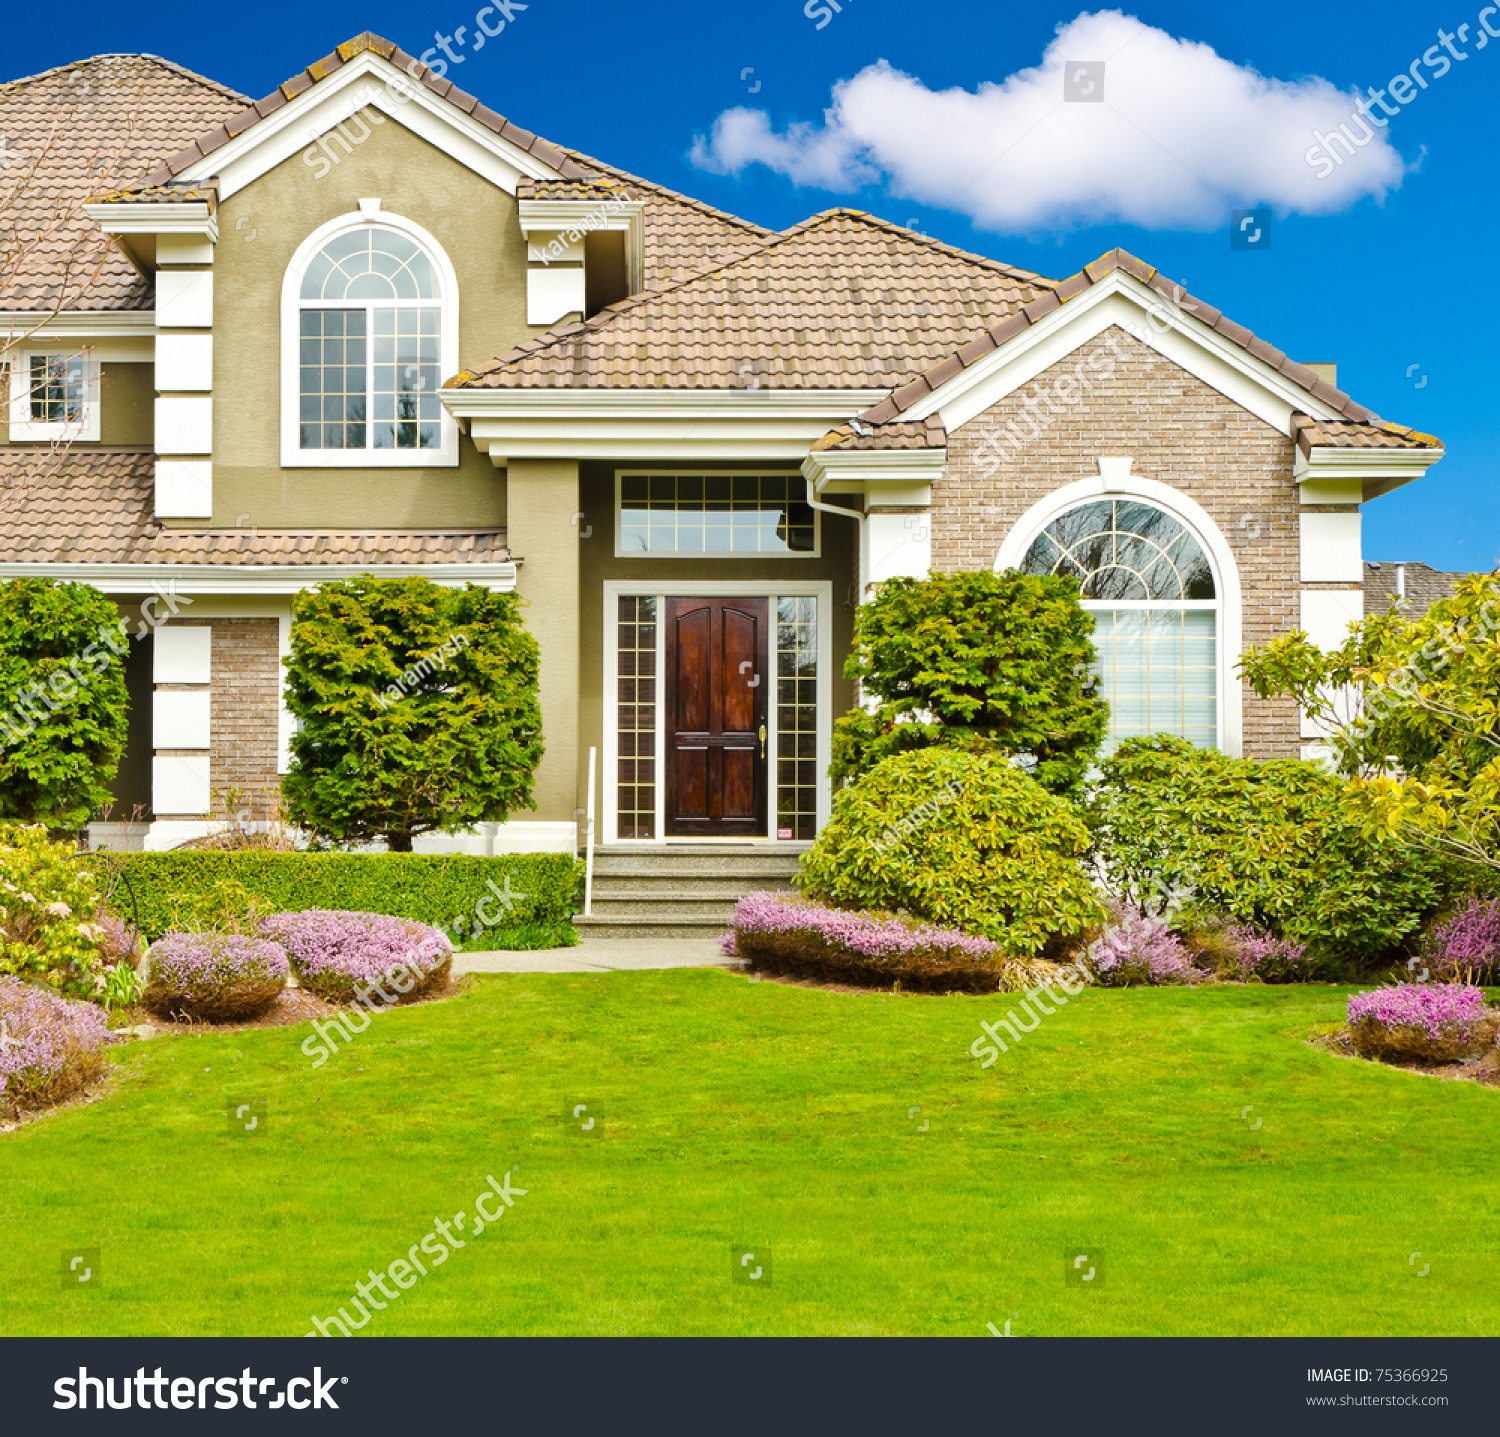 Fragment nice house stock photo 75366925 shutterstock for Nice house picture